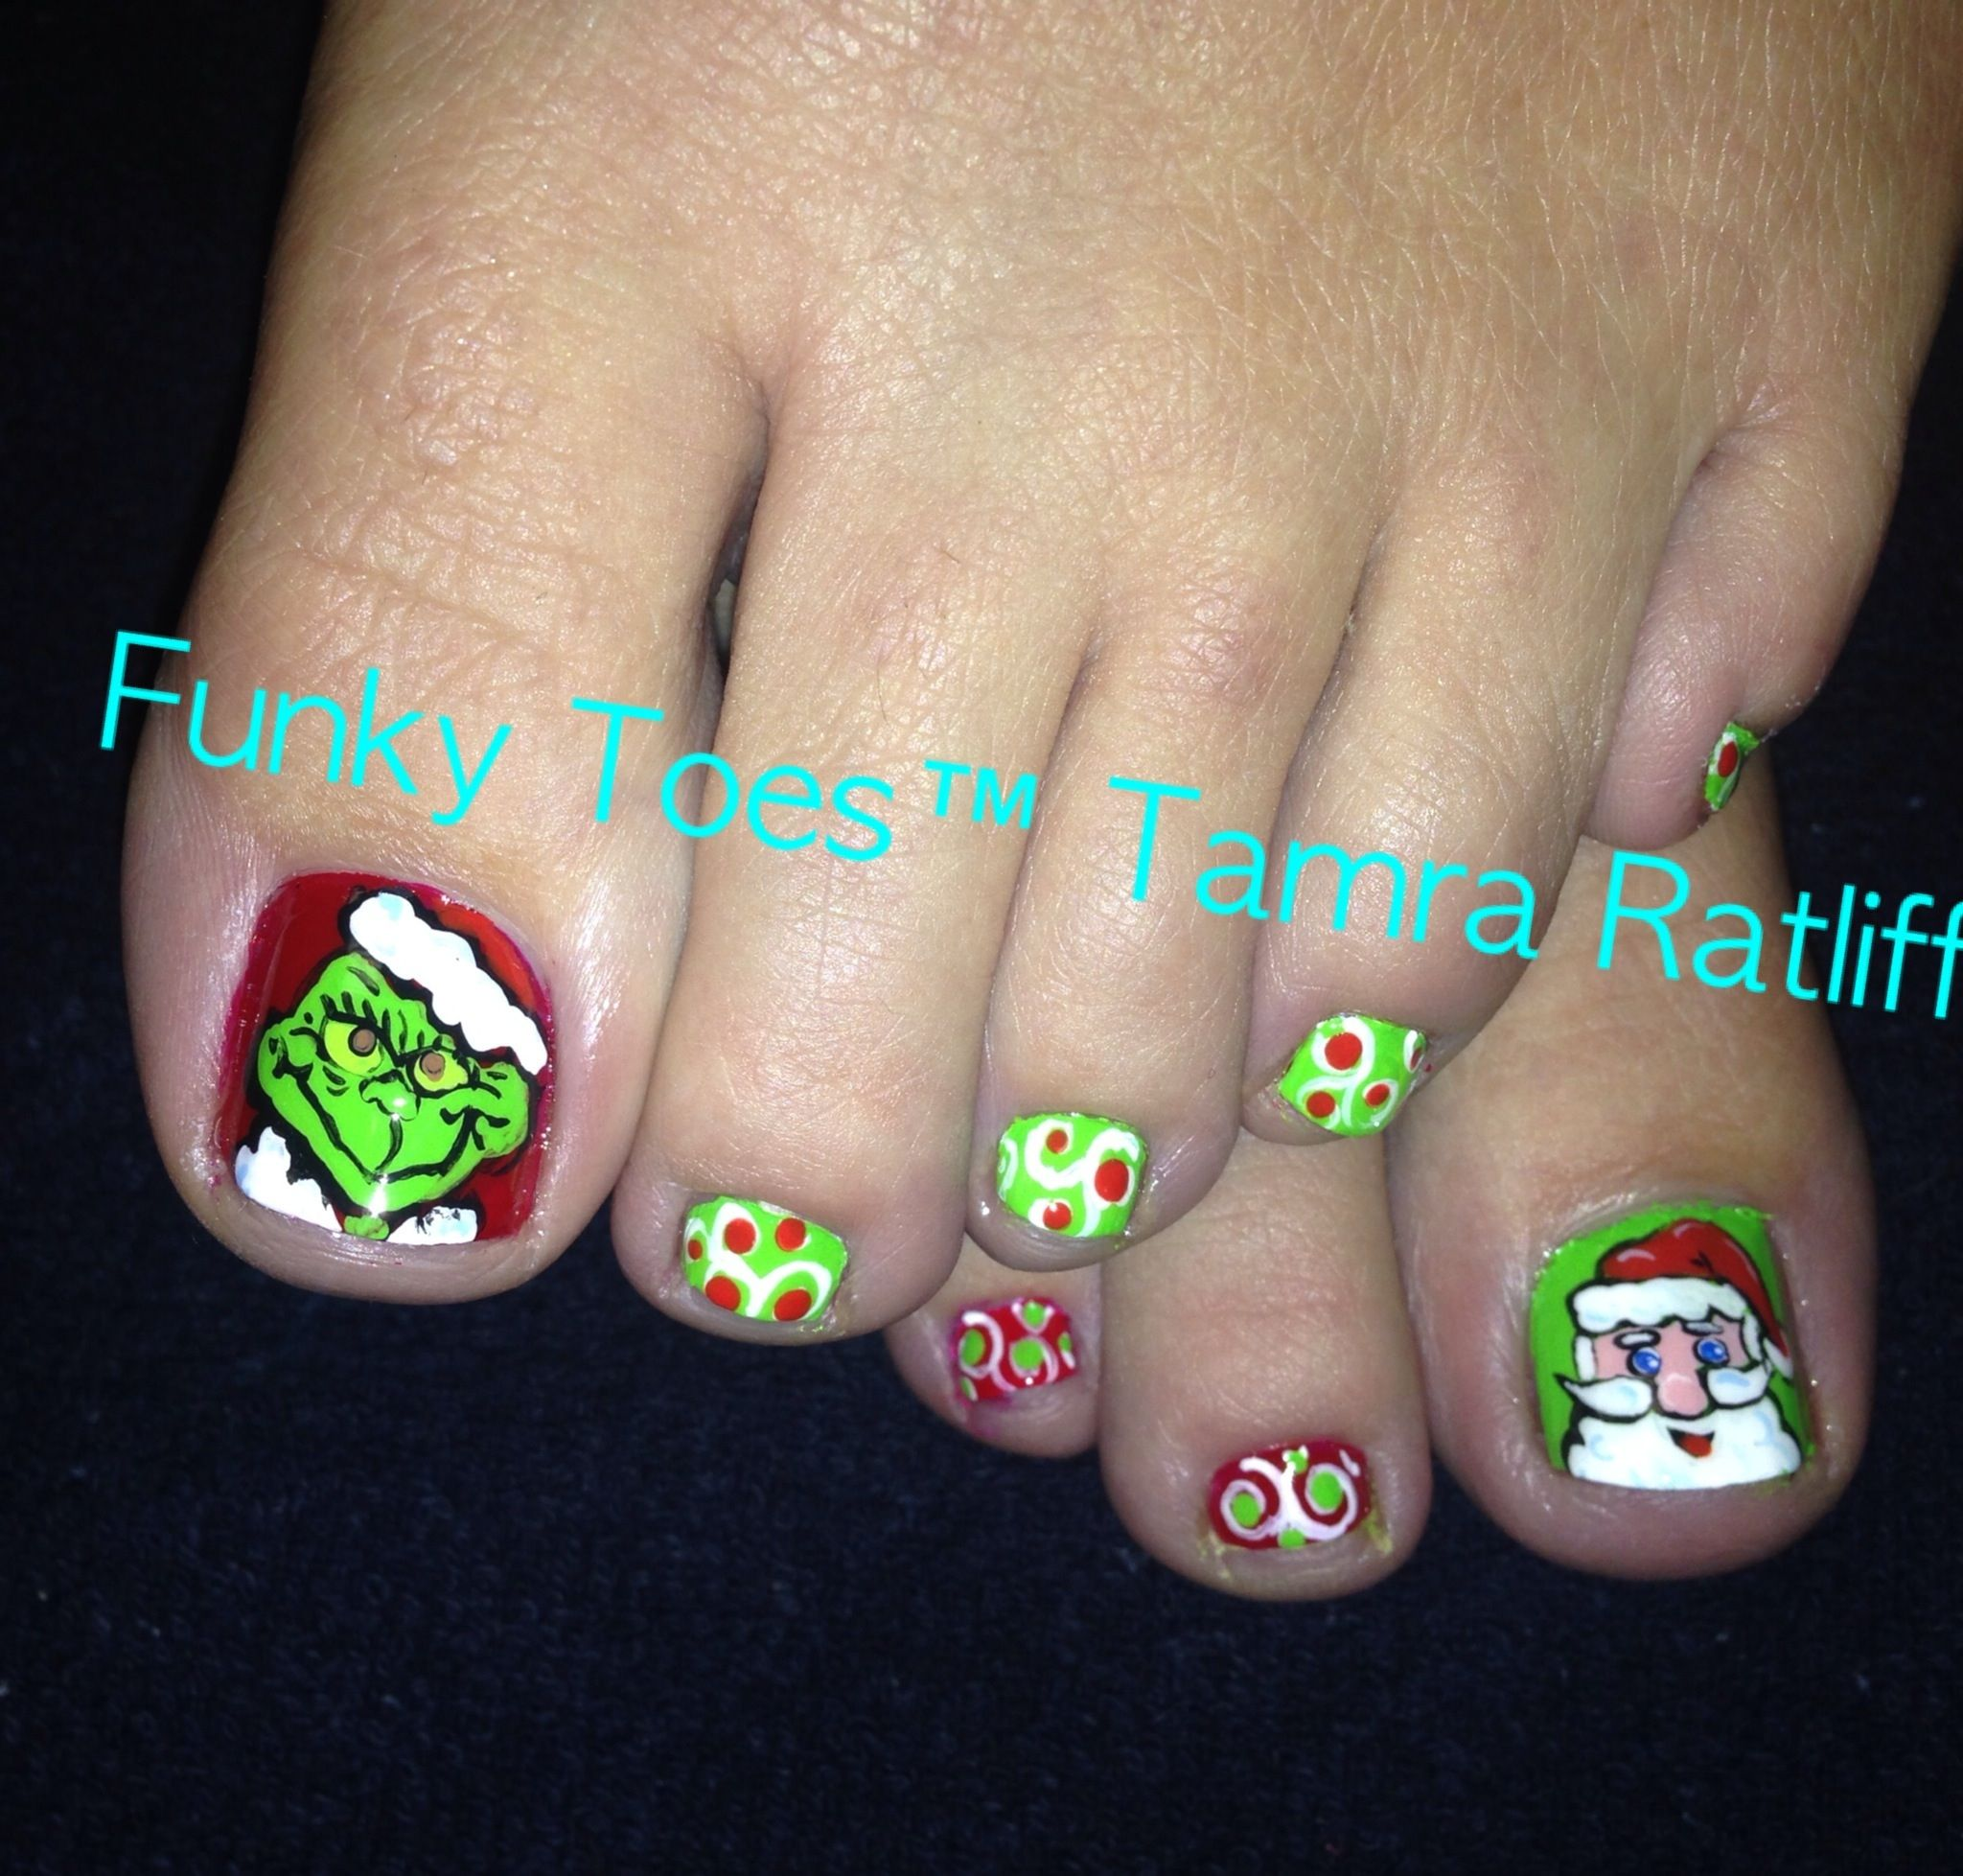 Merry Christmas Toe Nail Art Designs & Ideas 2017 | Xmas ...